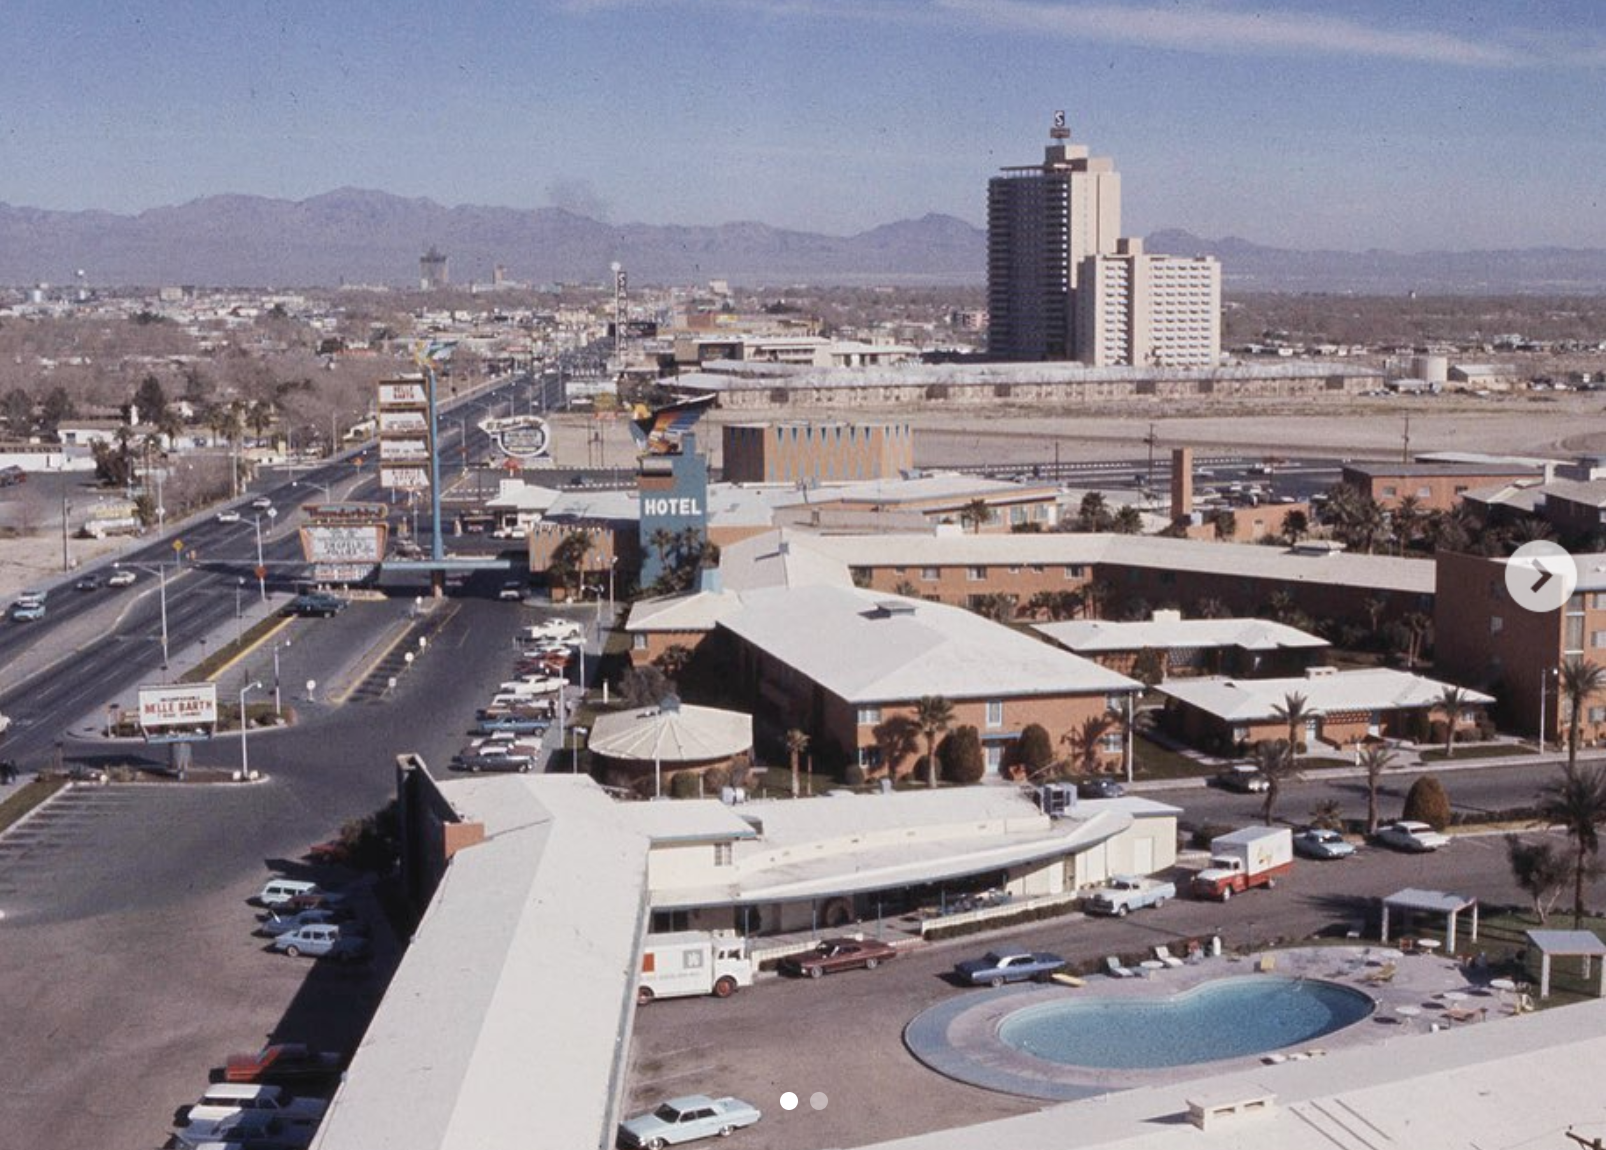 View from the Riviera, 1964, with the Algiers and Thunderbird hotels below. © Vintage Las Vegas Instagram